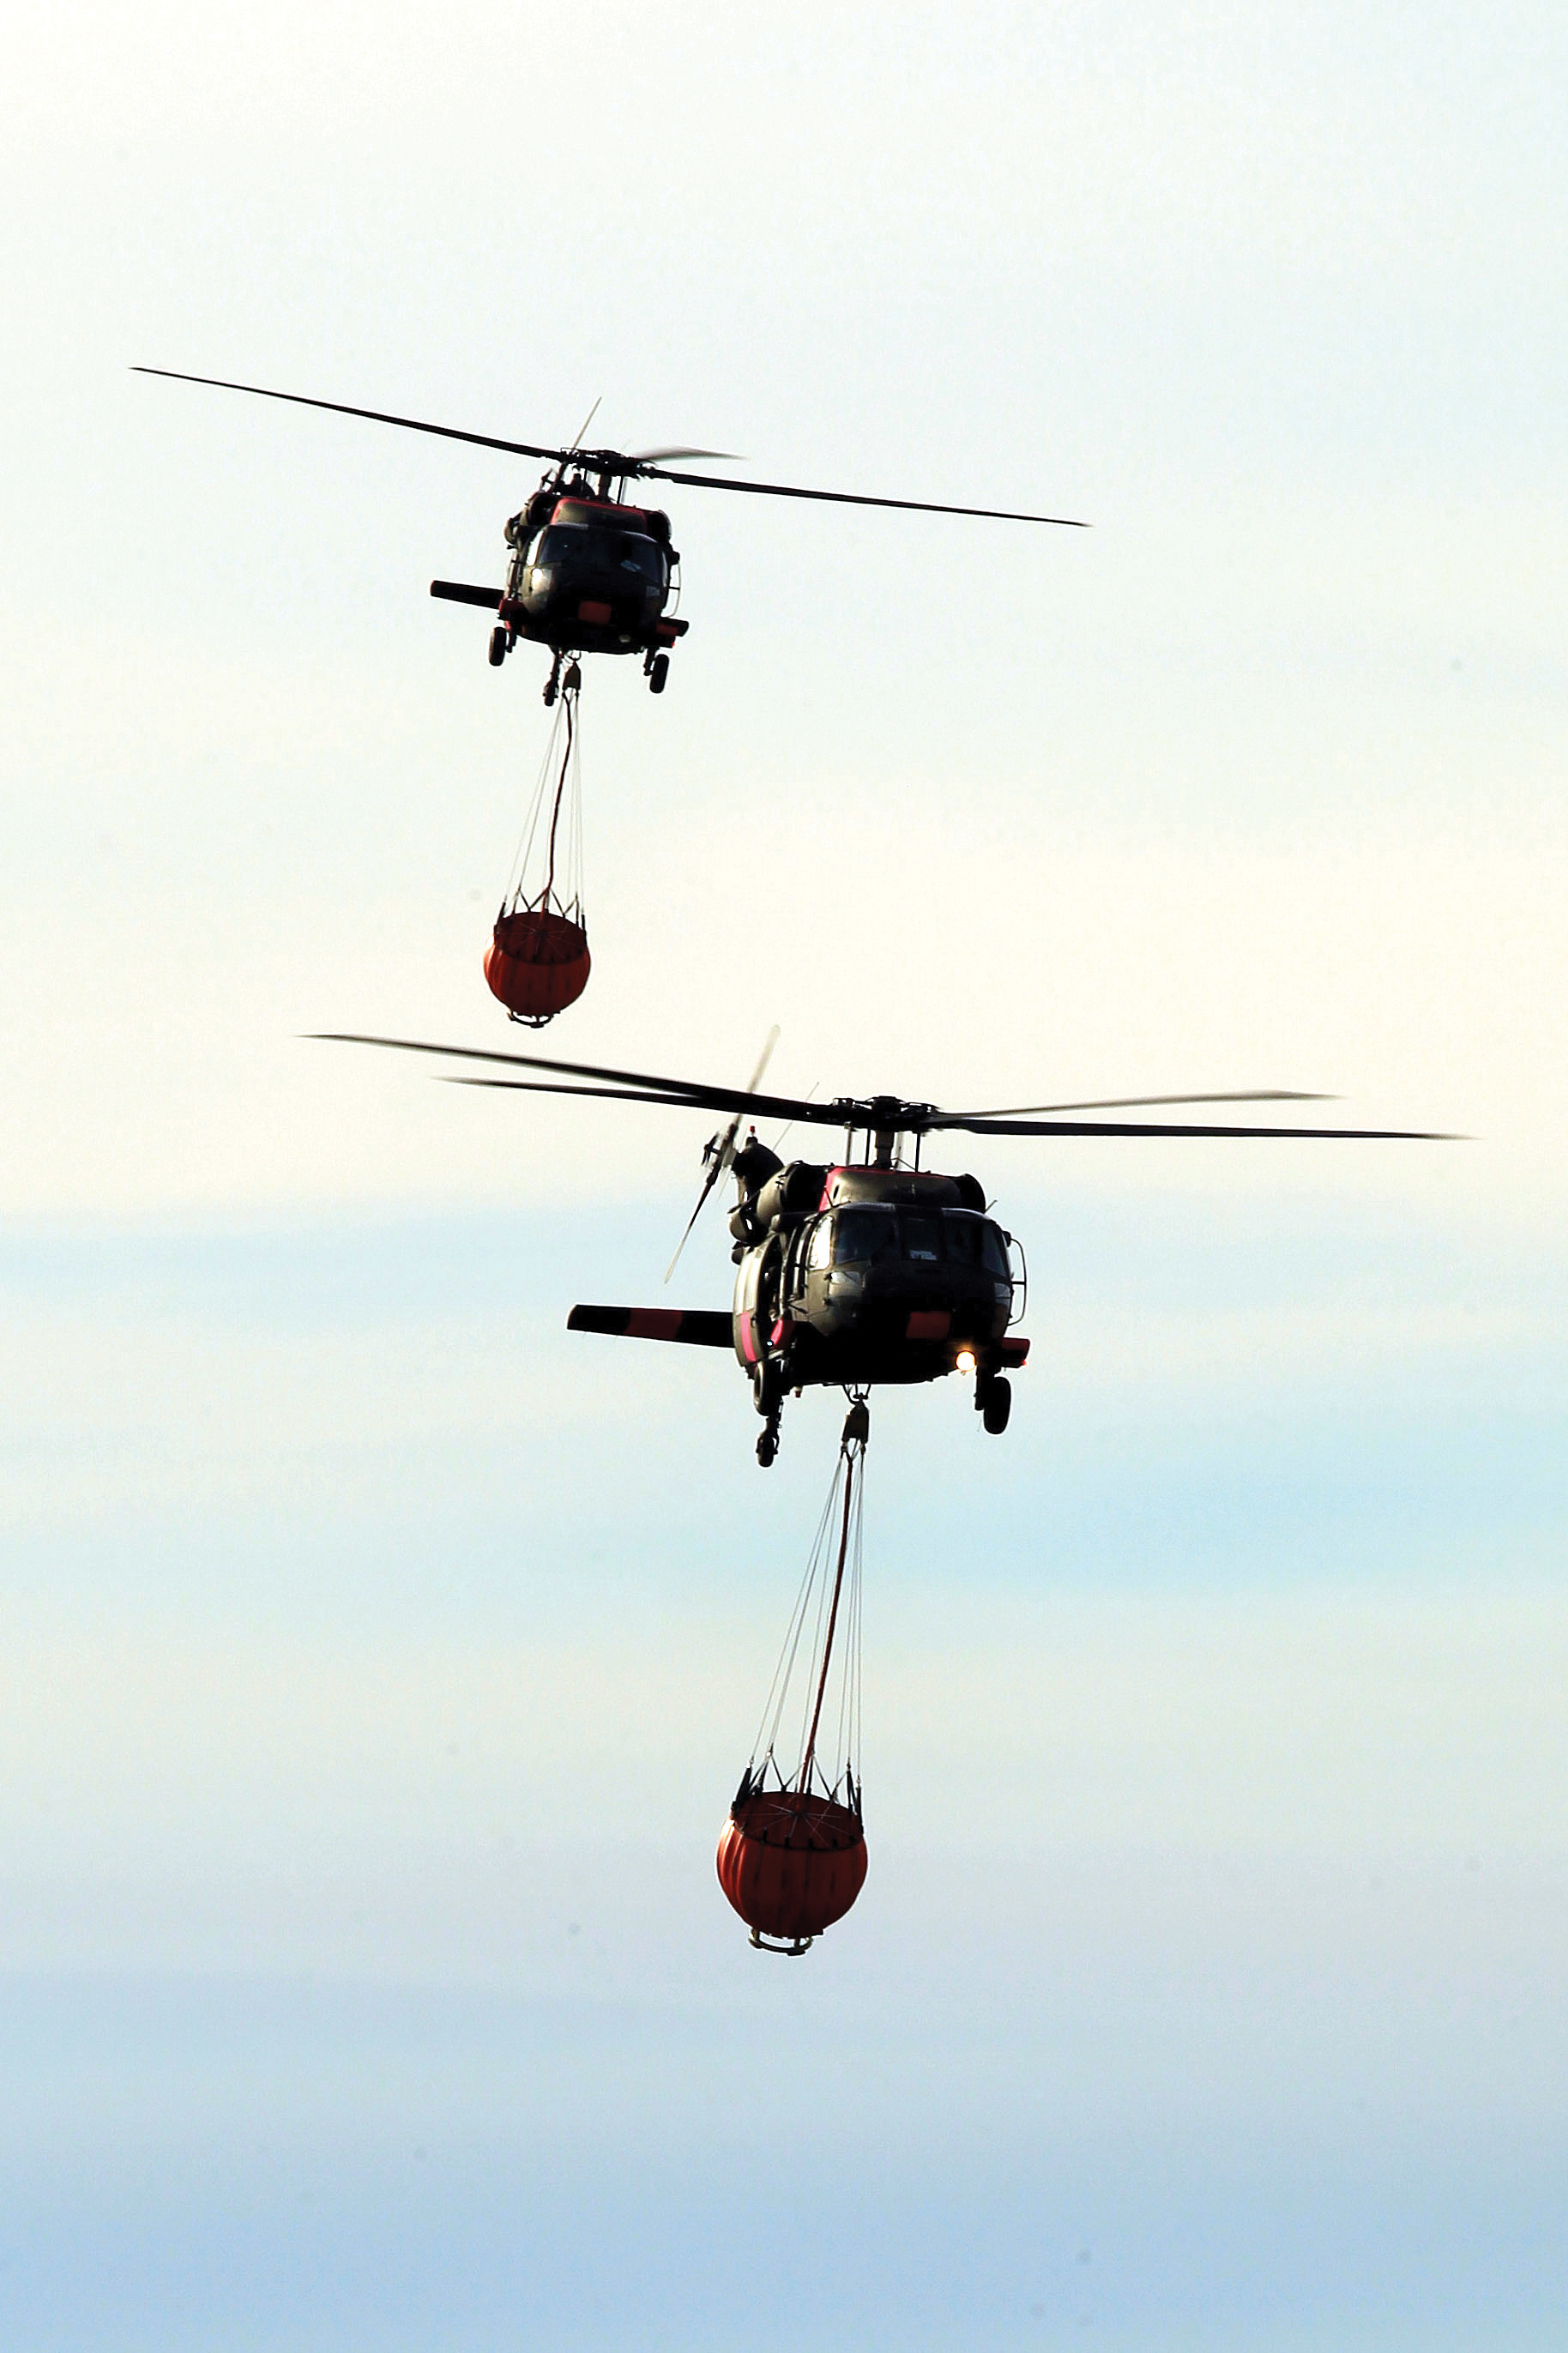 A pair of California National Guard UH-60 Black Hawk helicopters from B Company, 1st Battalion, 140th Aviation Regiment, return to Camarillo Airport in Camarillo, California, Sun., Dec. 10, 2017, after making water drops on the Thomas Fire burning in Ventura County. (U.S. Air National Guard photo by Senior Airman Crystal Housman)